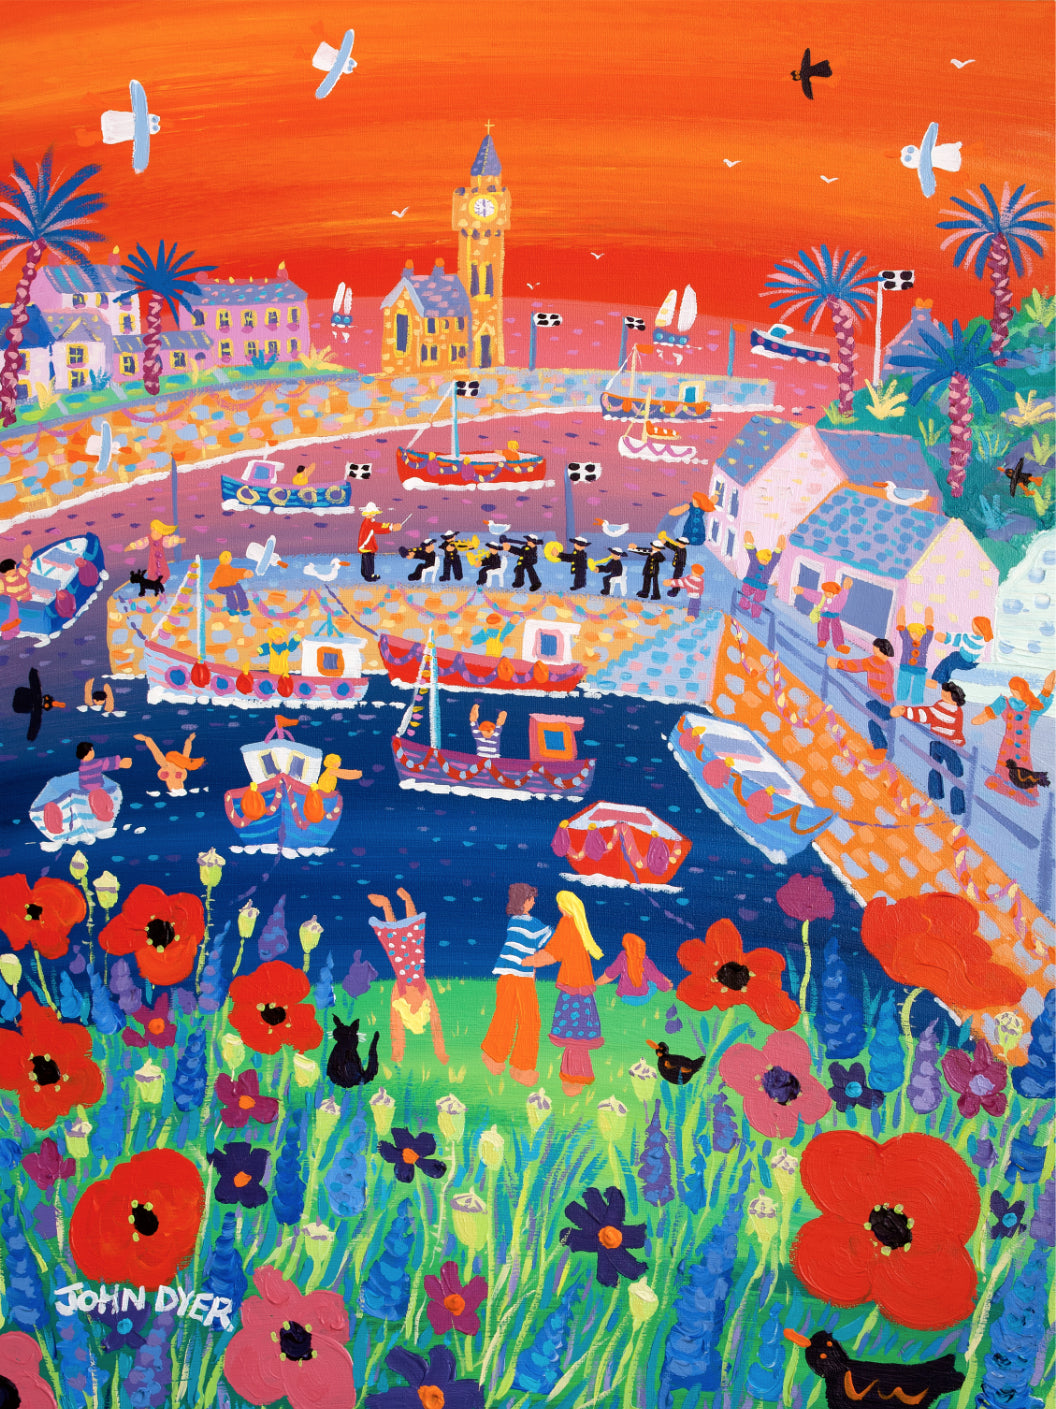 Signed Limited Edition Print by John Dyer. Poppies and Players, Porthleven.